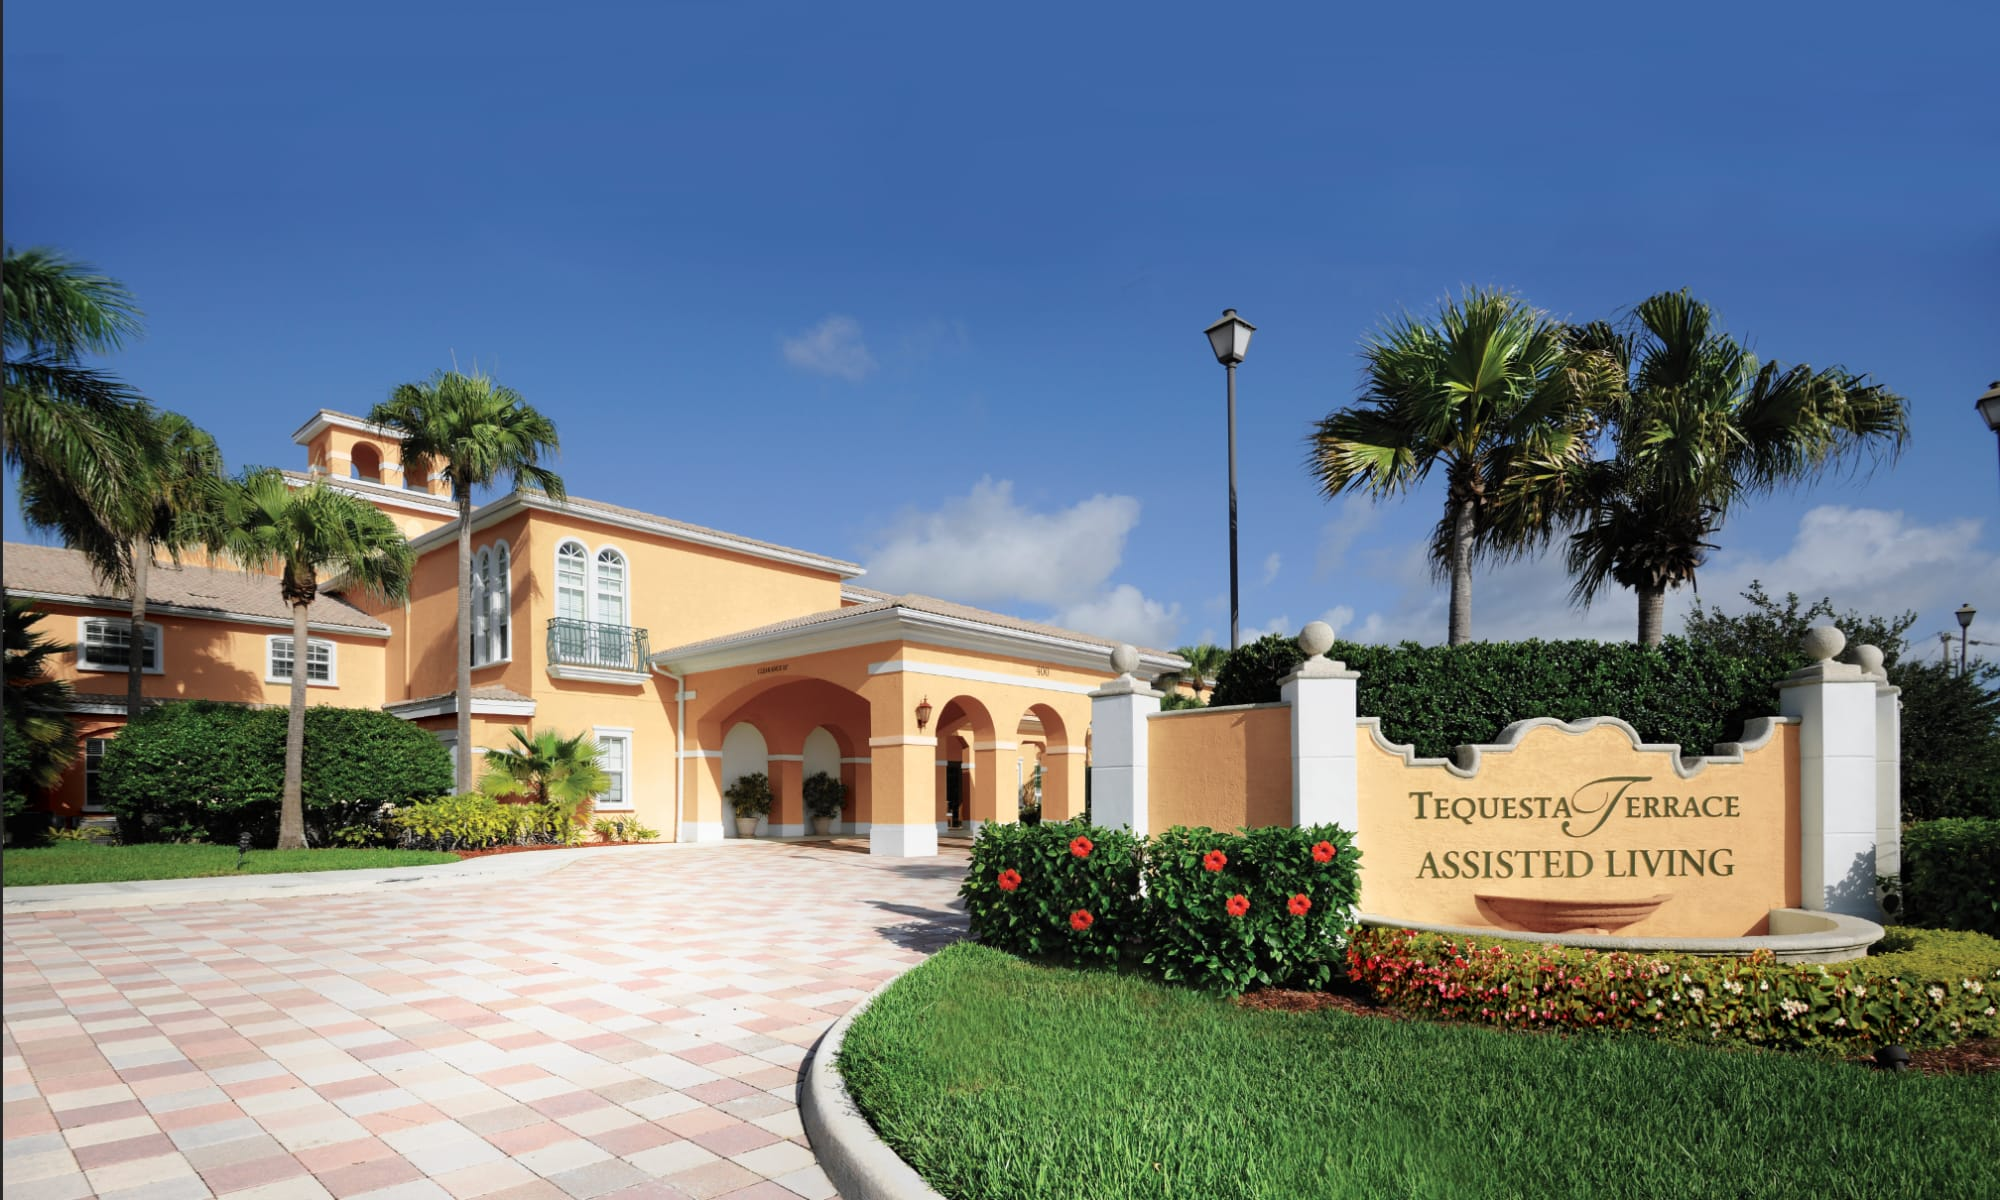 Assisted Living Tequesta Terrace Florida